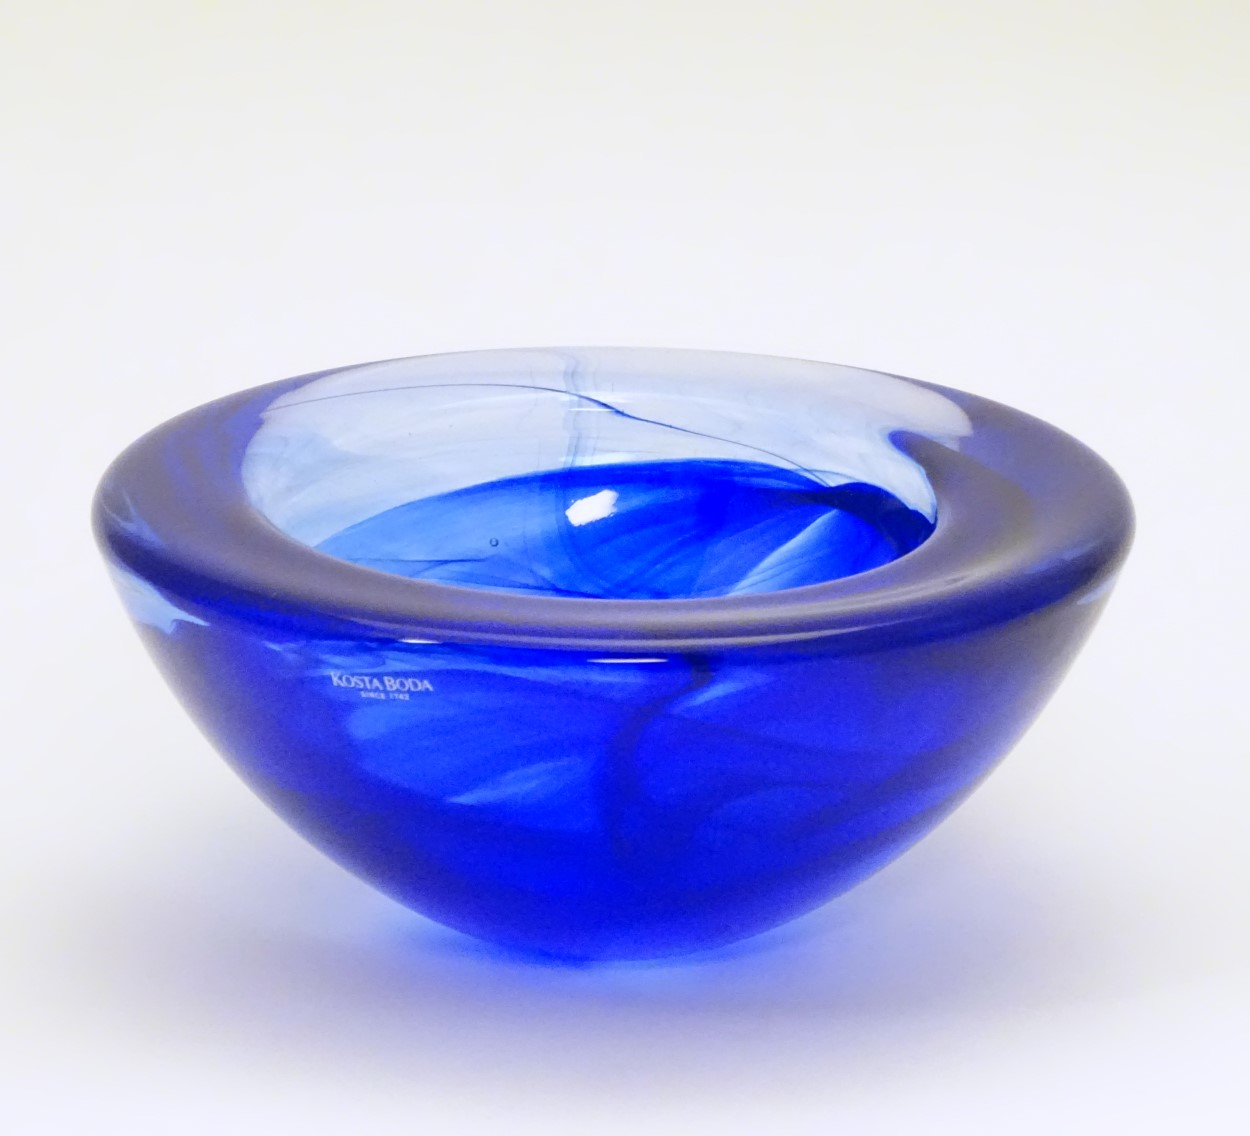 Lot 115 - Swedish Glass : A Kosta Boda cobalt blue swirl bowl ( signed ) designed by Anna Ehrner A Votive